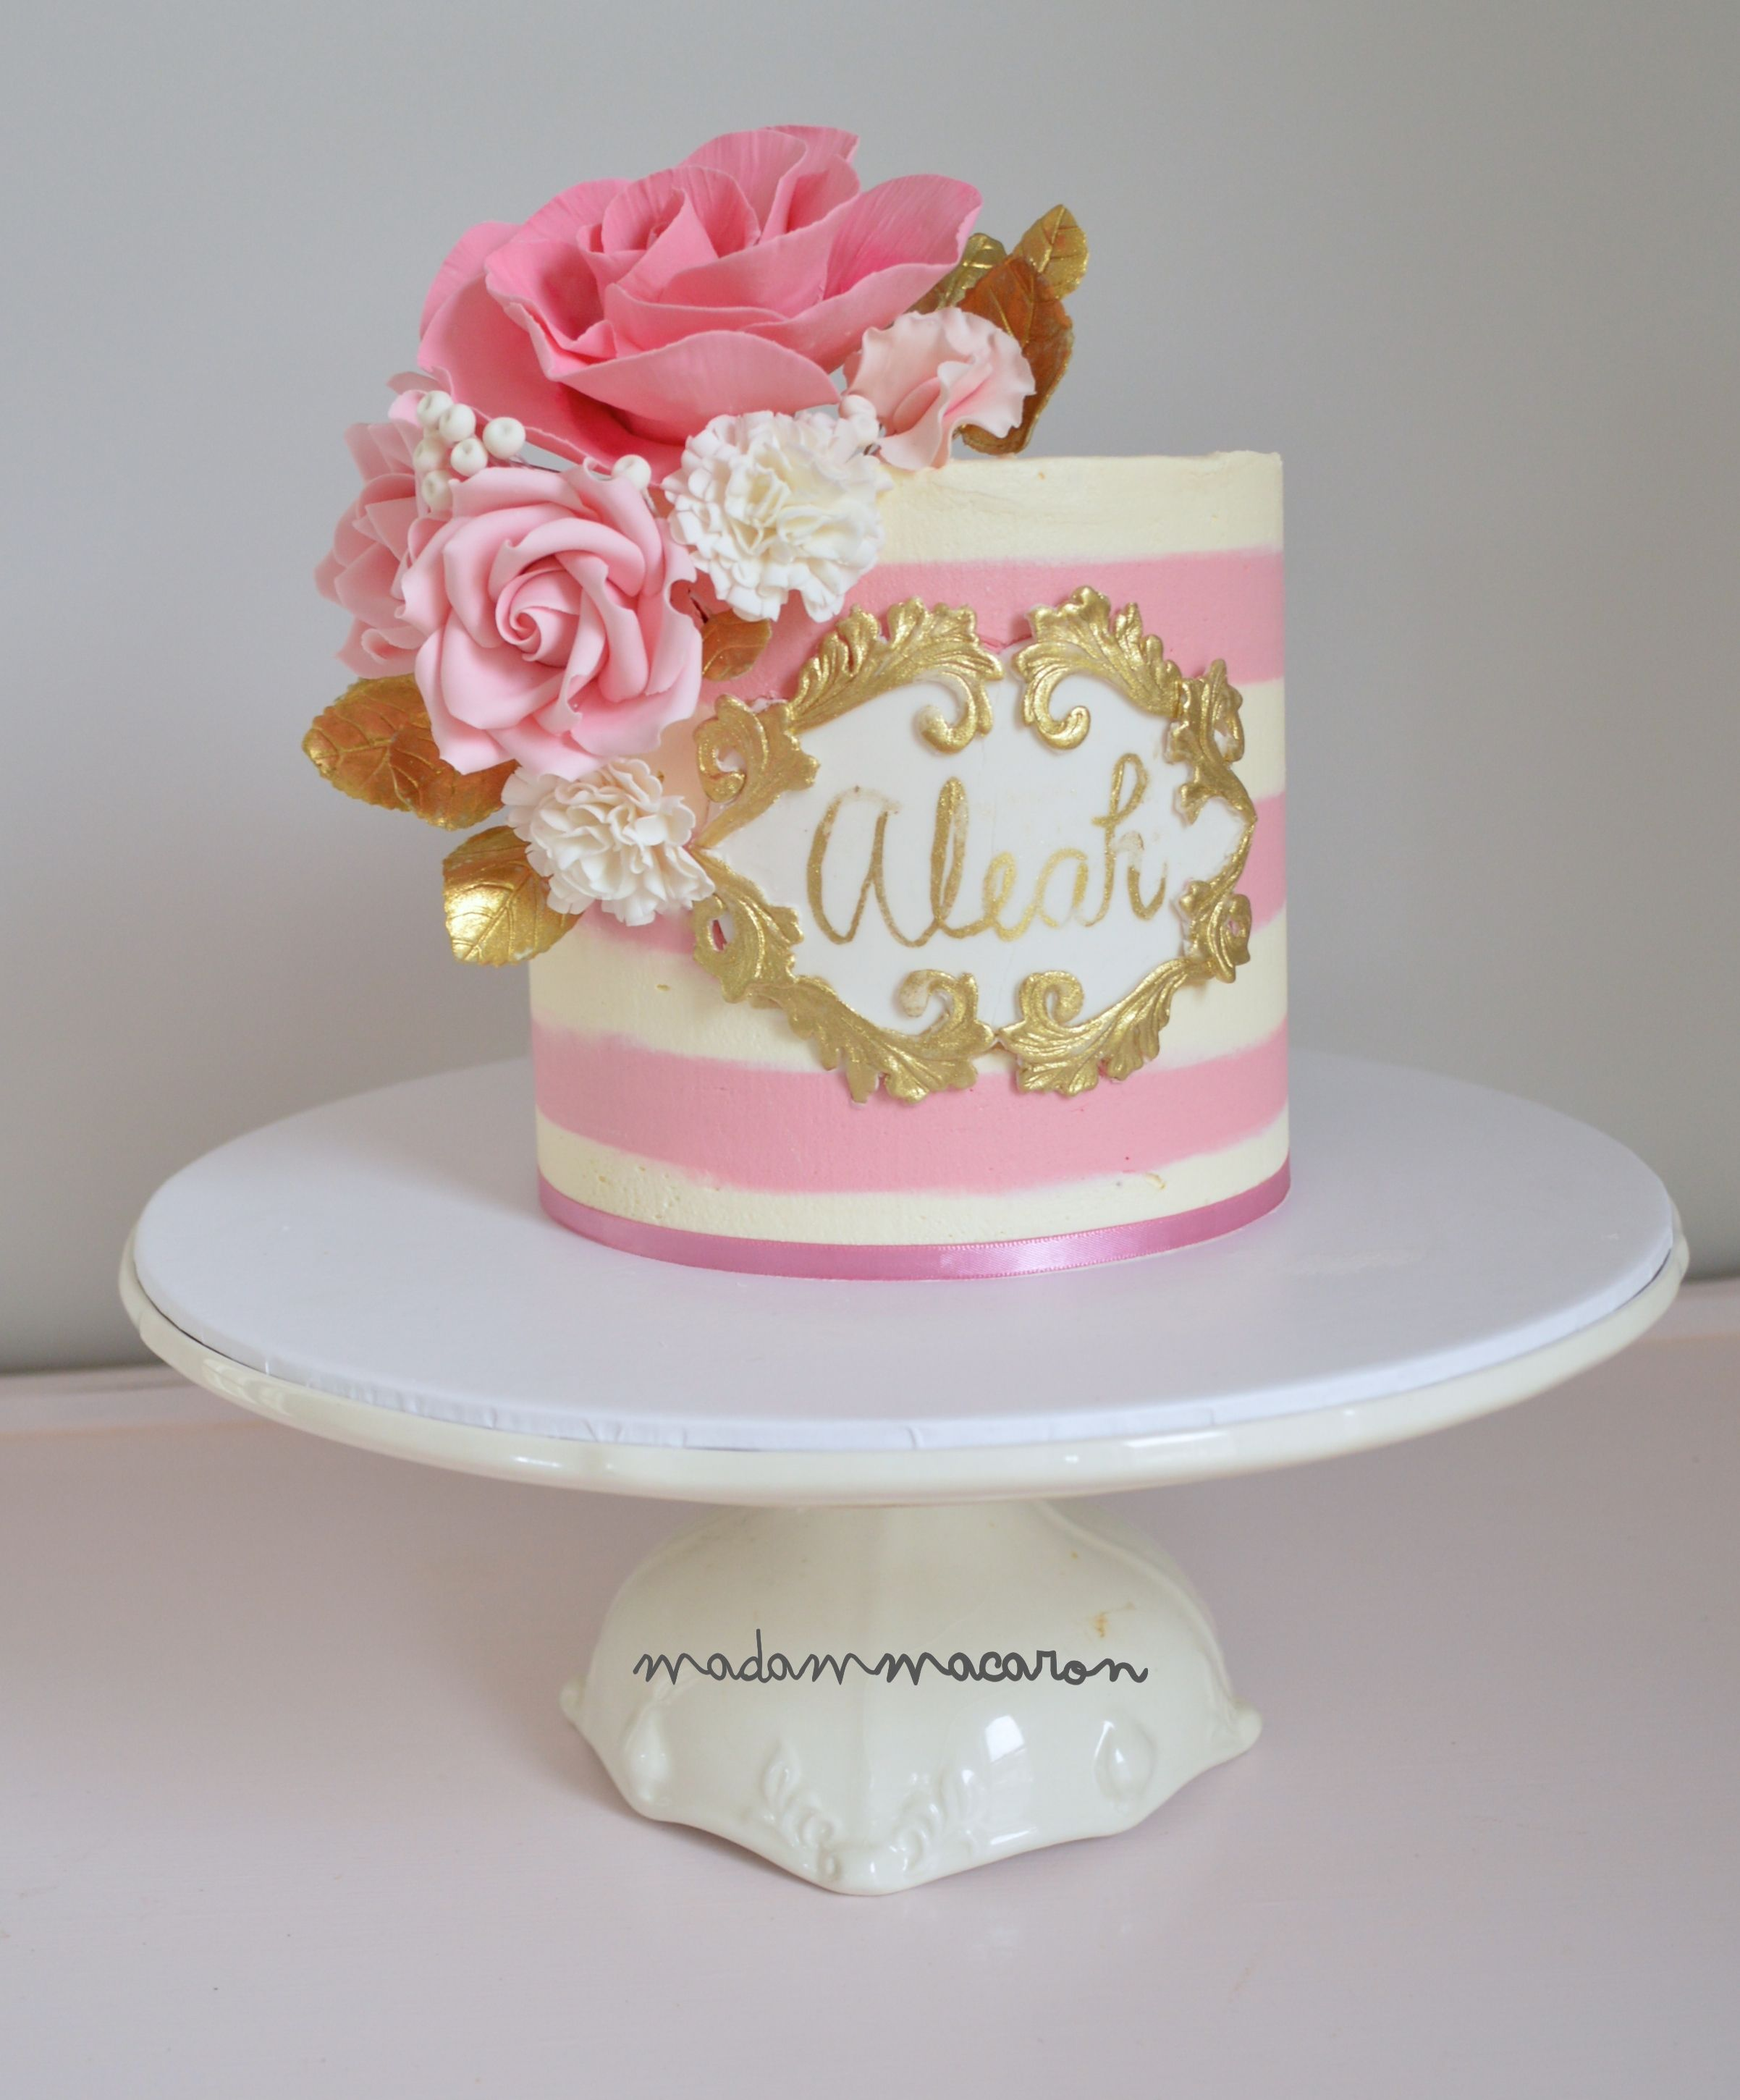 White and pink buttercream striped cake with a hand painted name white and pink buttercream striped cake with a hand painted name plaque and pink gold and white sugar flowers mightylinksfo